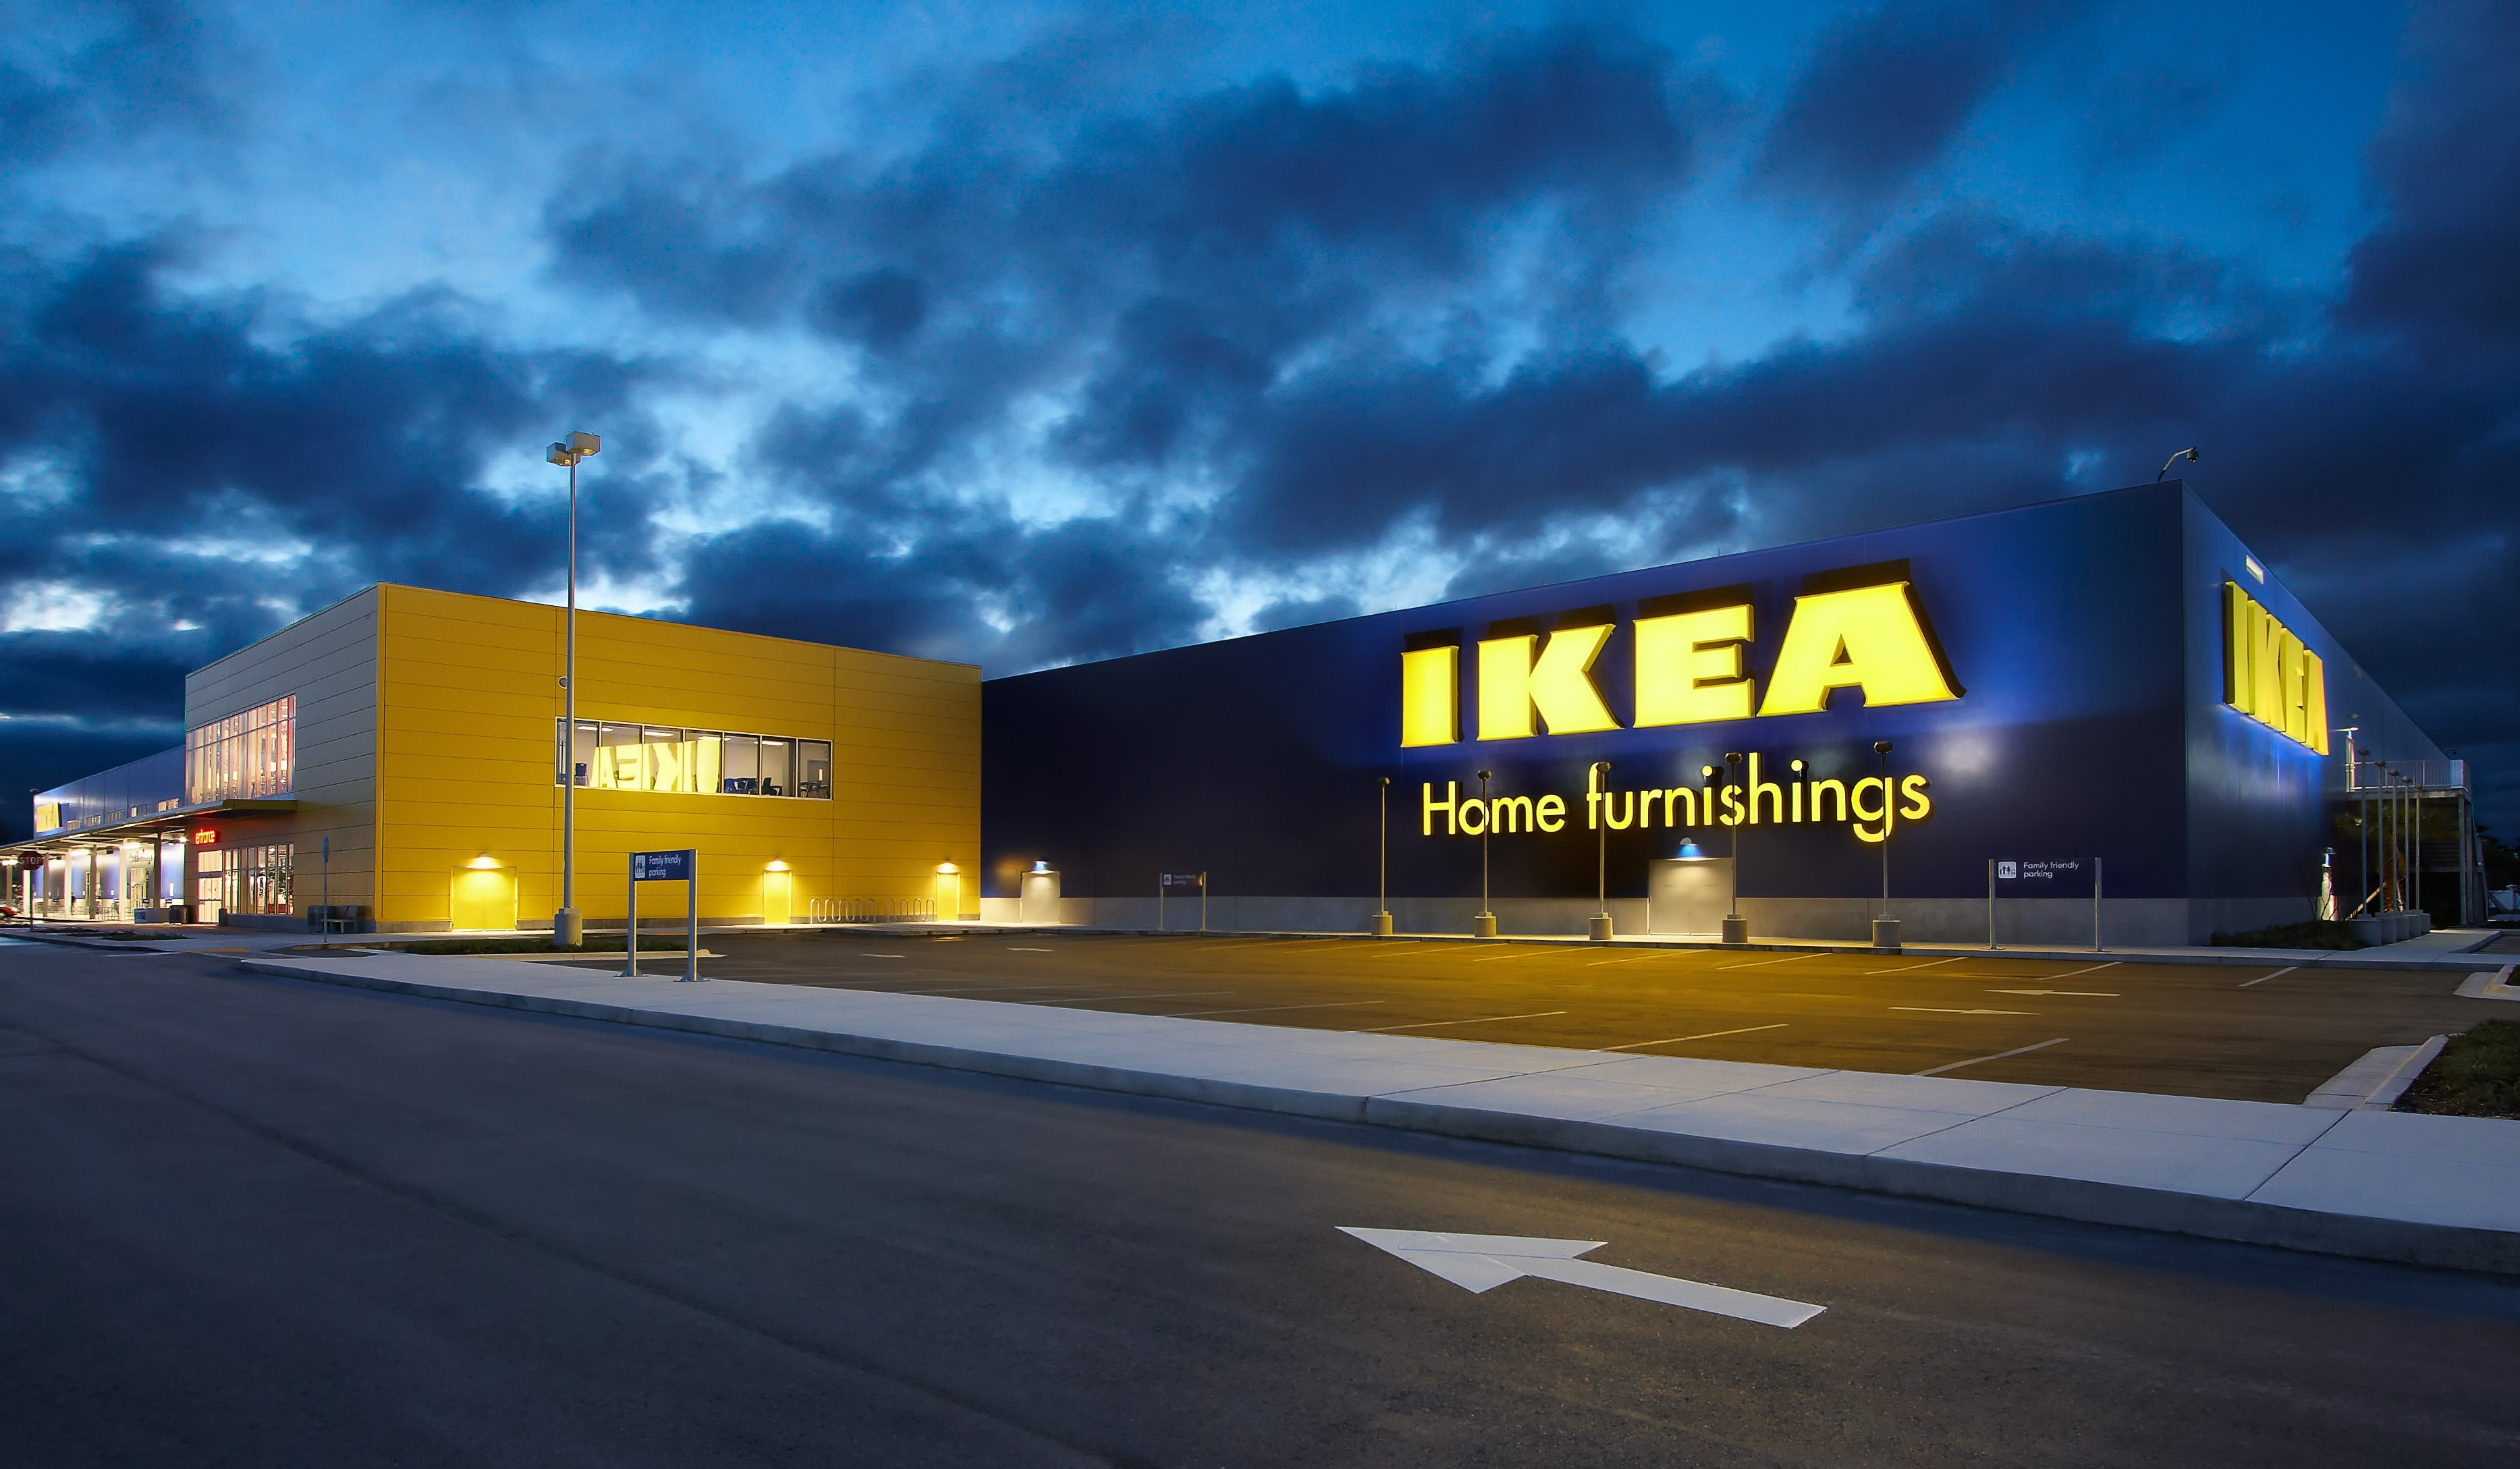 Ikea empieza a vender en Amazon y Alibaba